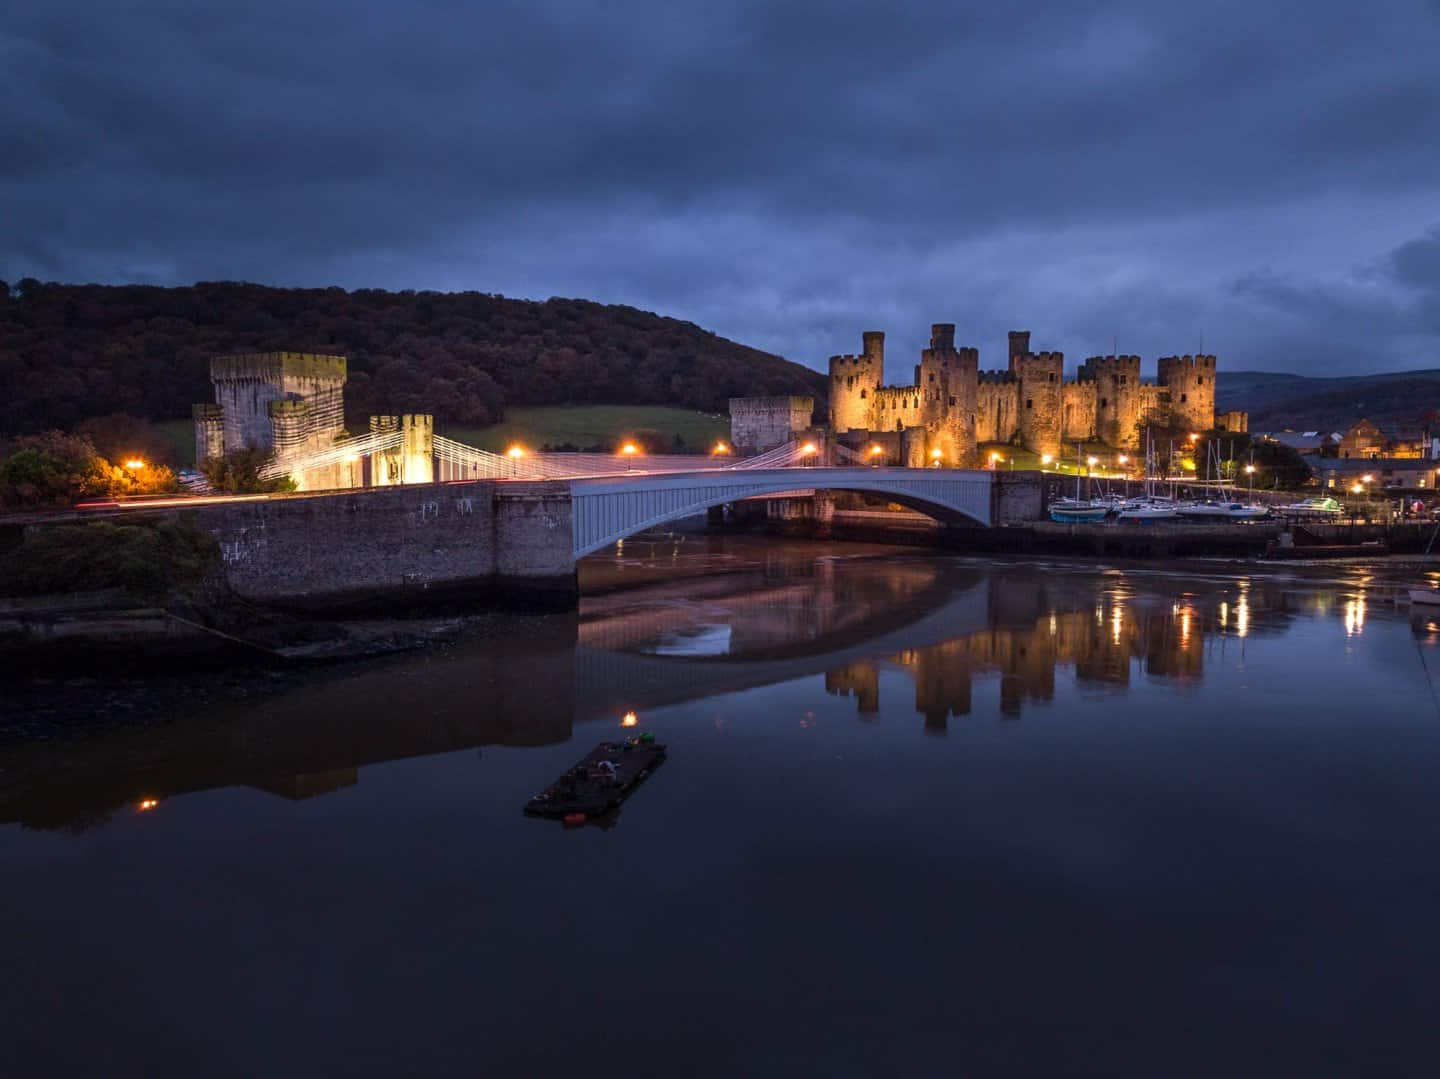 Night photography at Conwy Castle.